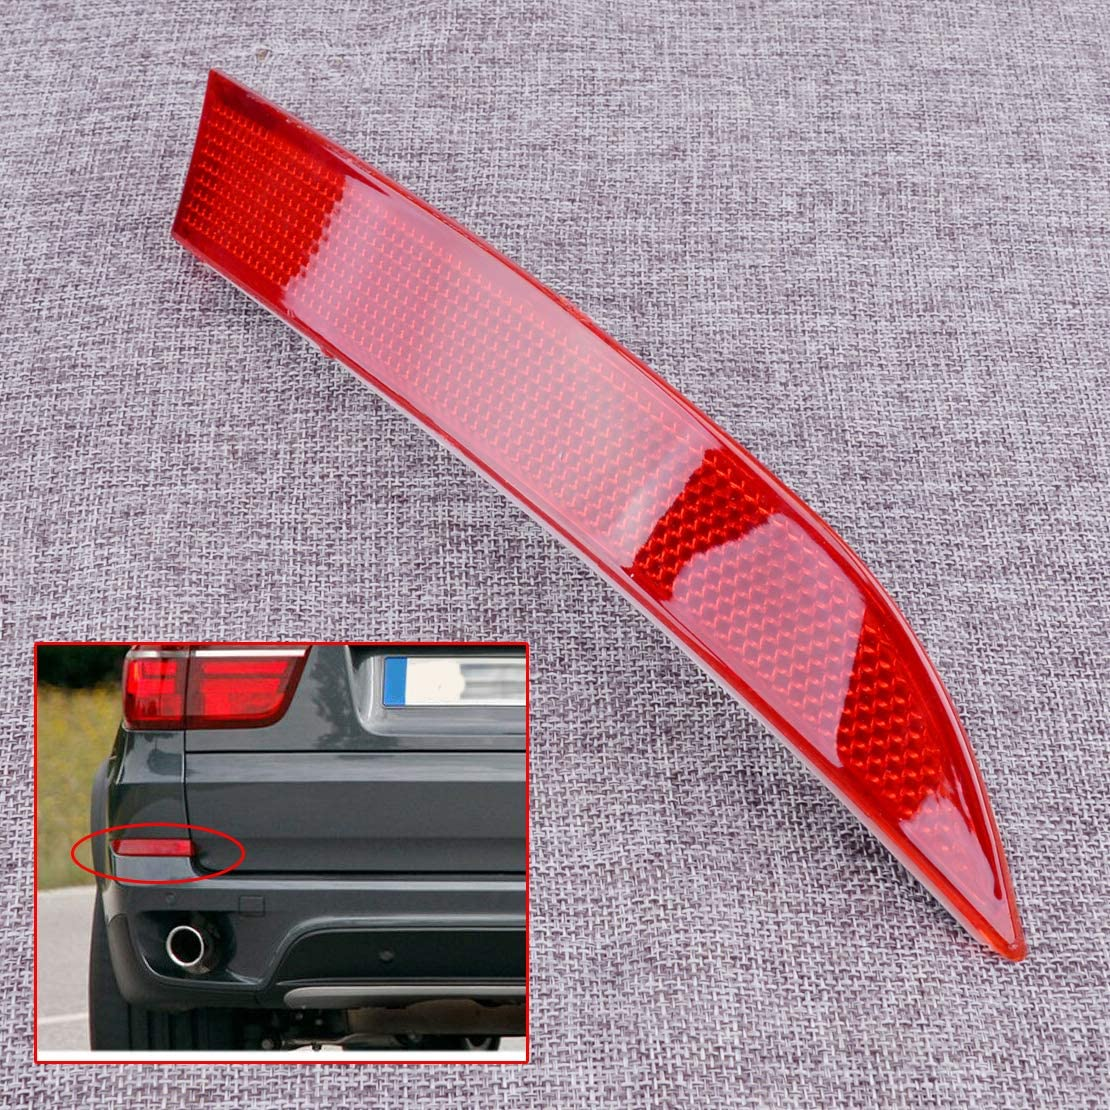 CITALL Left Rear Bumper Lens Reflector Cover Housing fit for BMW X5 E70 2011-2013 # 63147240997